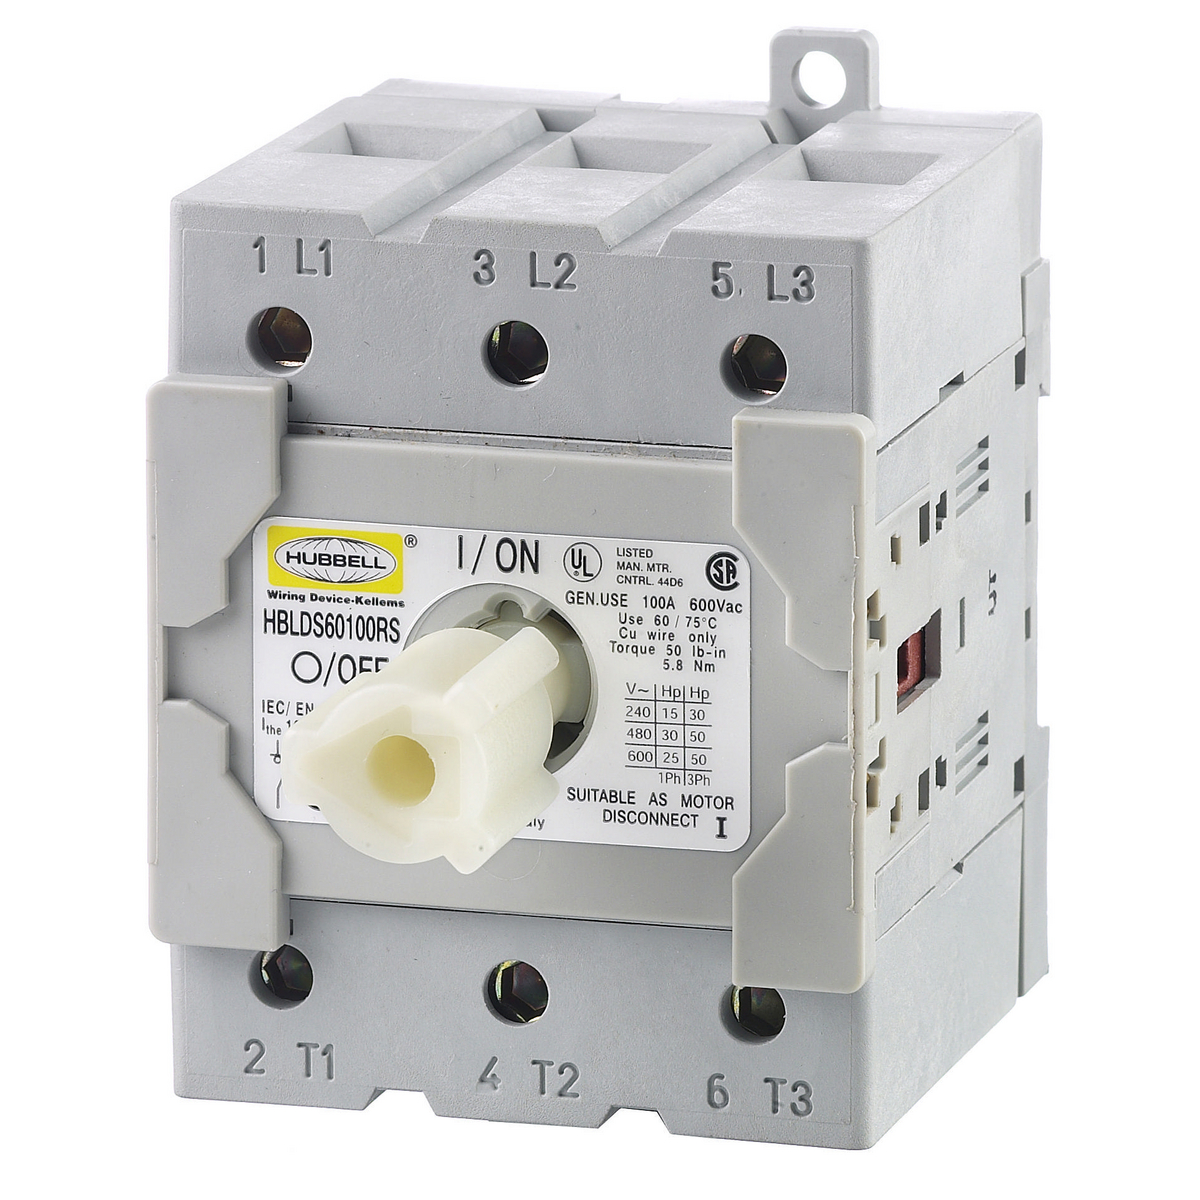 Hubbell HBLDS60100RS REP DISCO SWITCH, 60A,